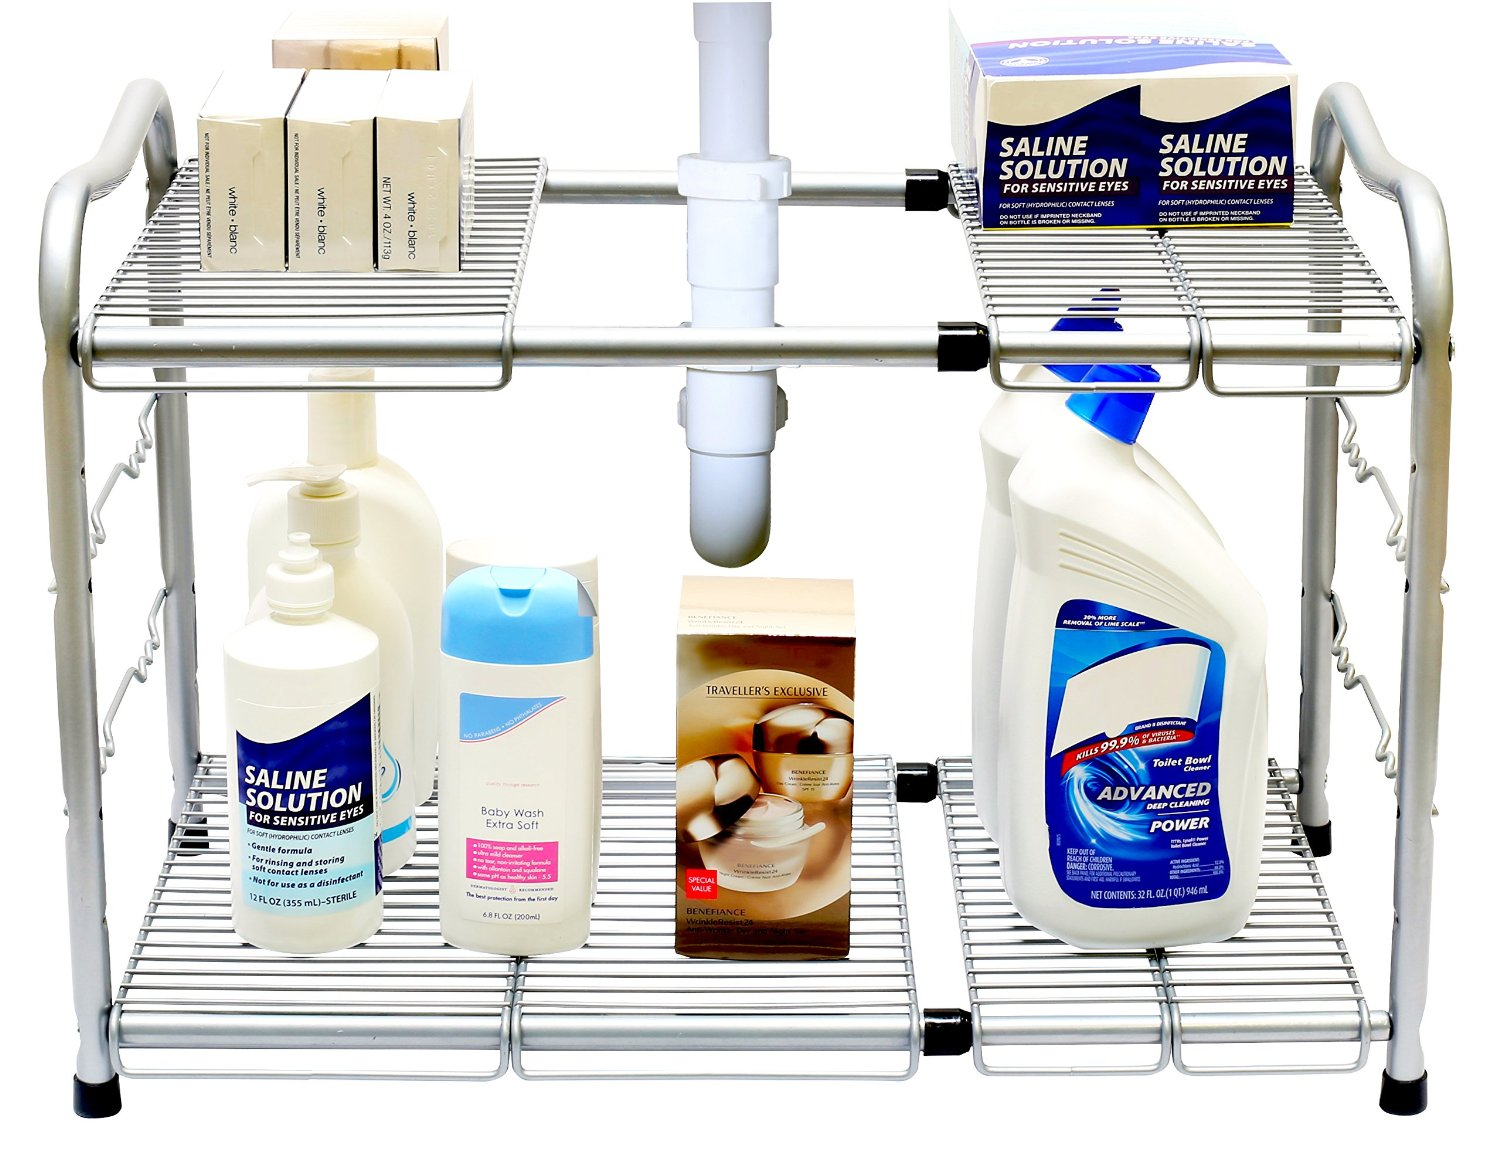 15 Fantastic Items for Organizing Your Home | www.growingupgabel.com